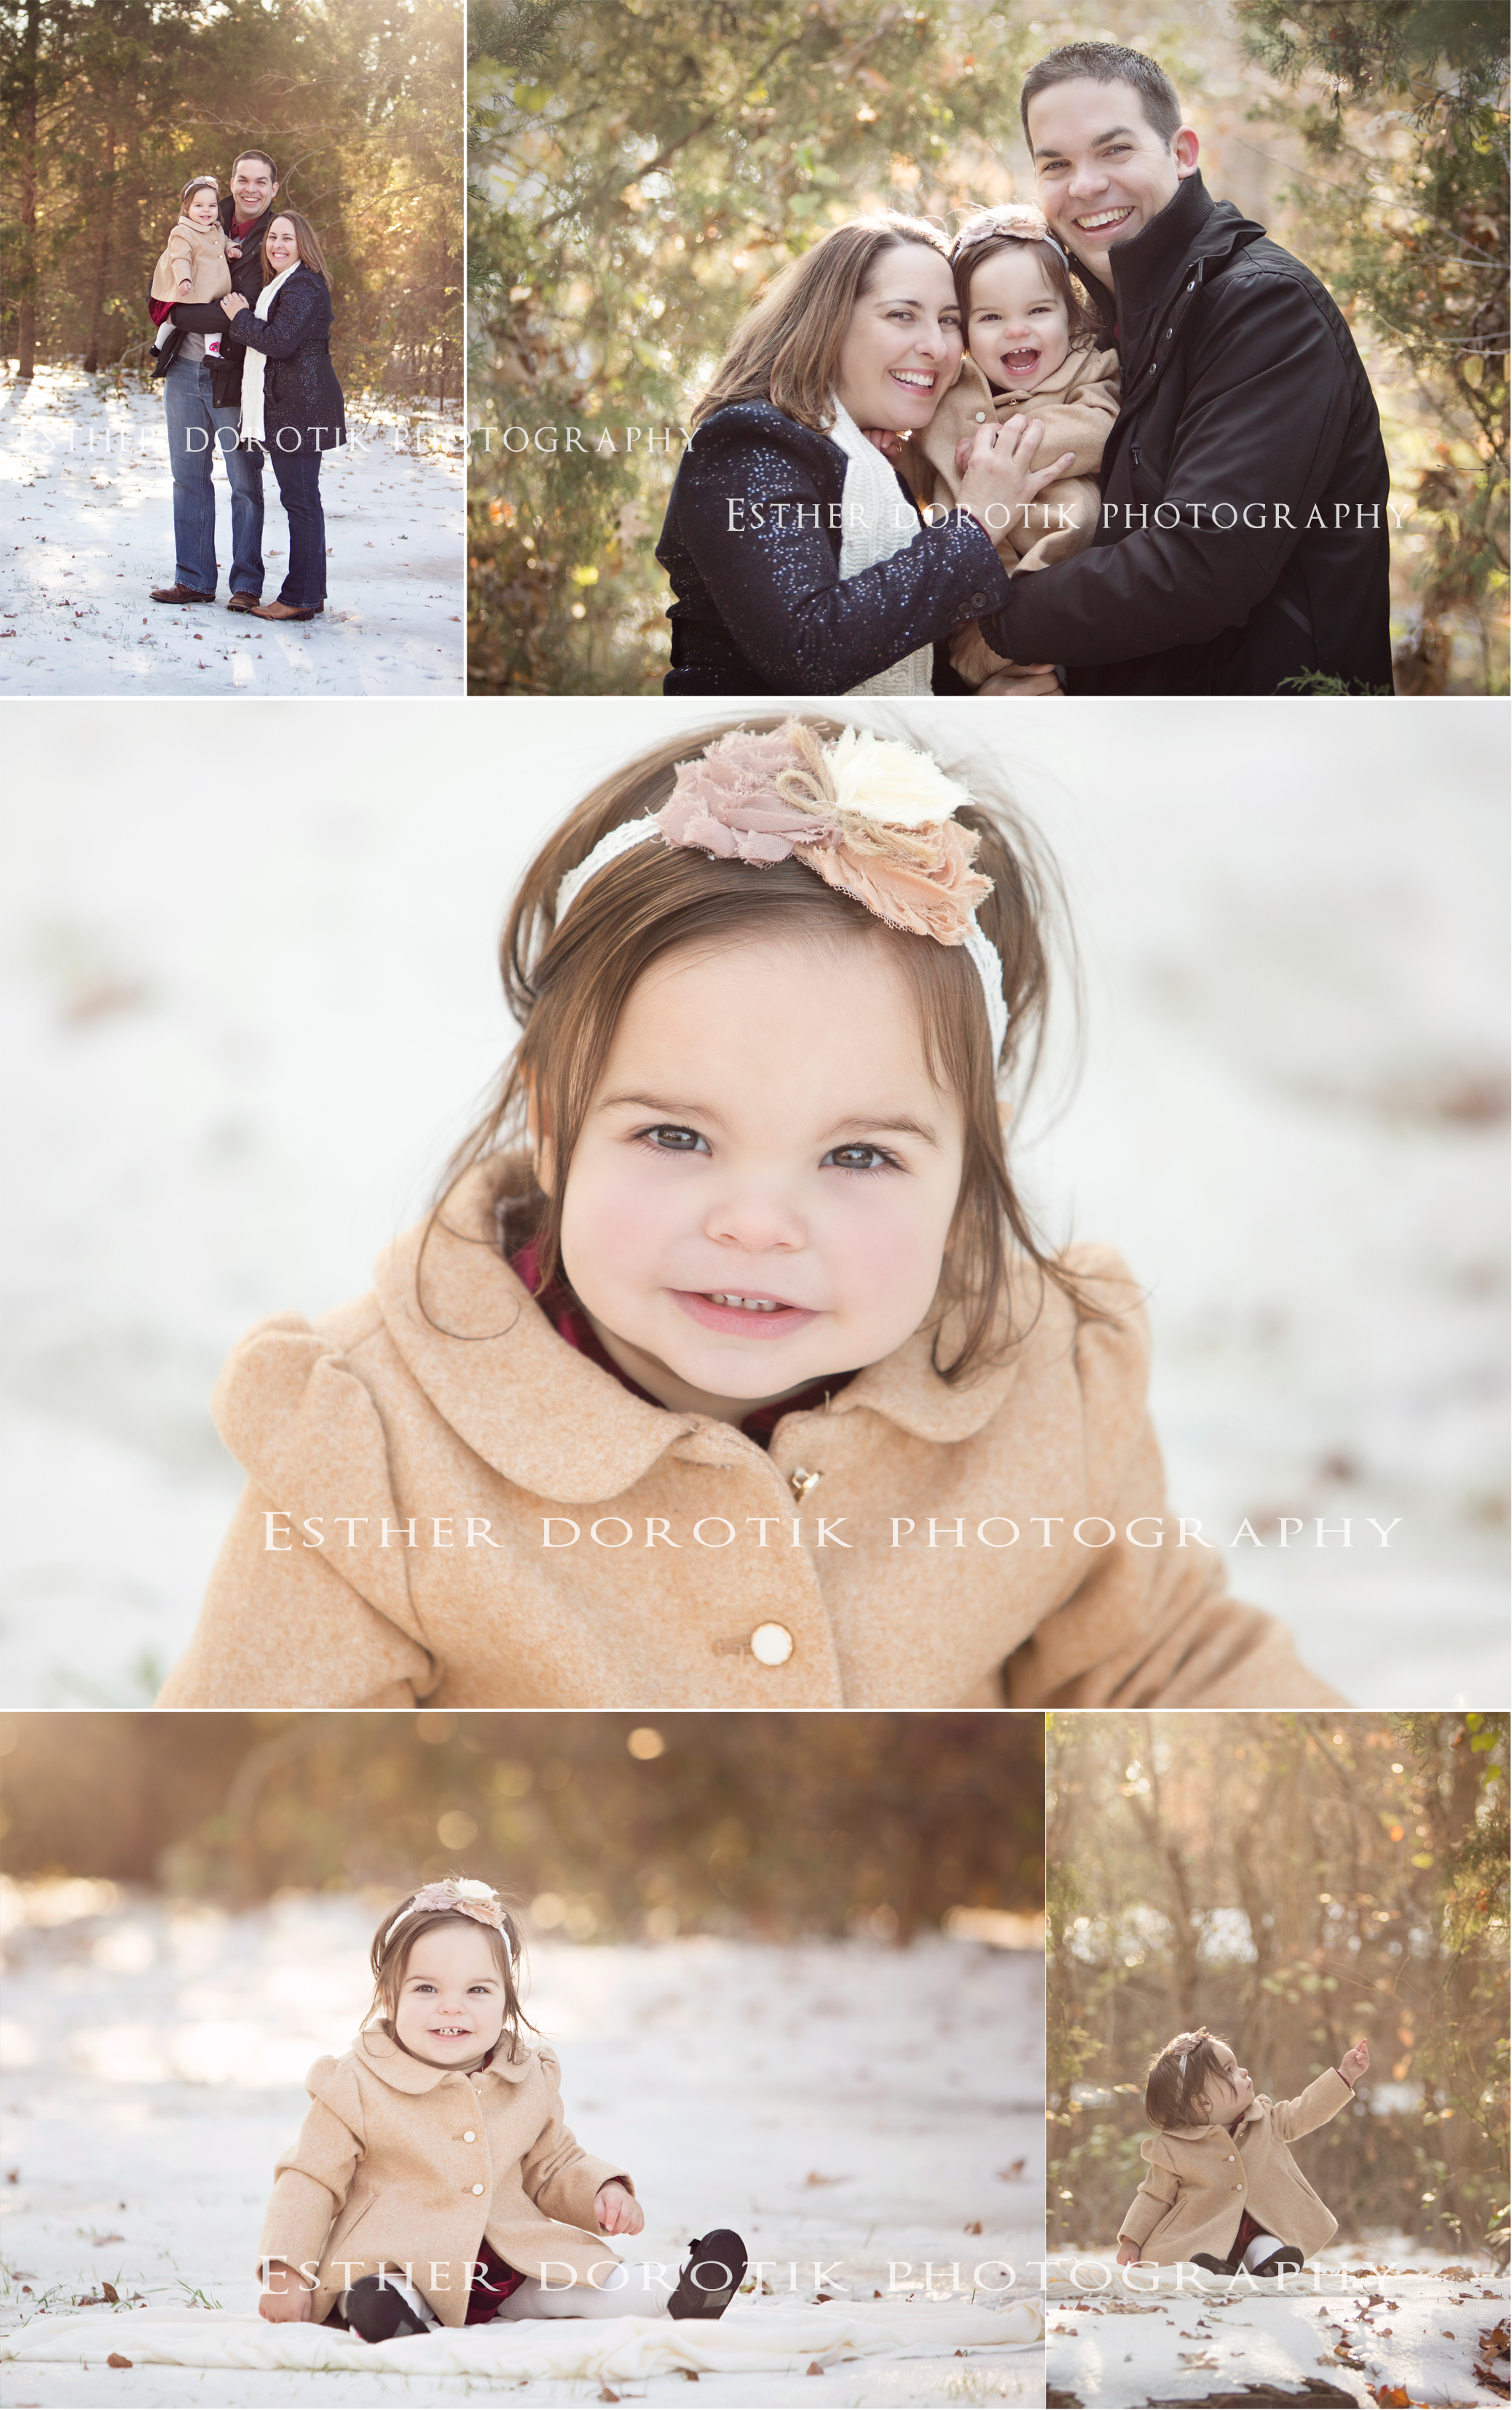 one-year-old-and-family-pictures-in-snow-by-Dallas-Fort-Worth-photographer